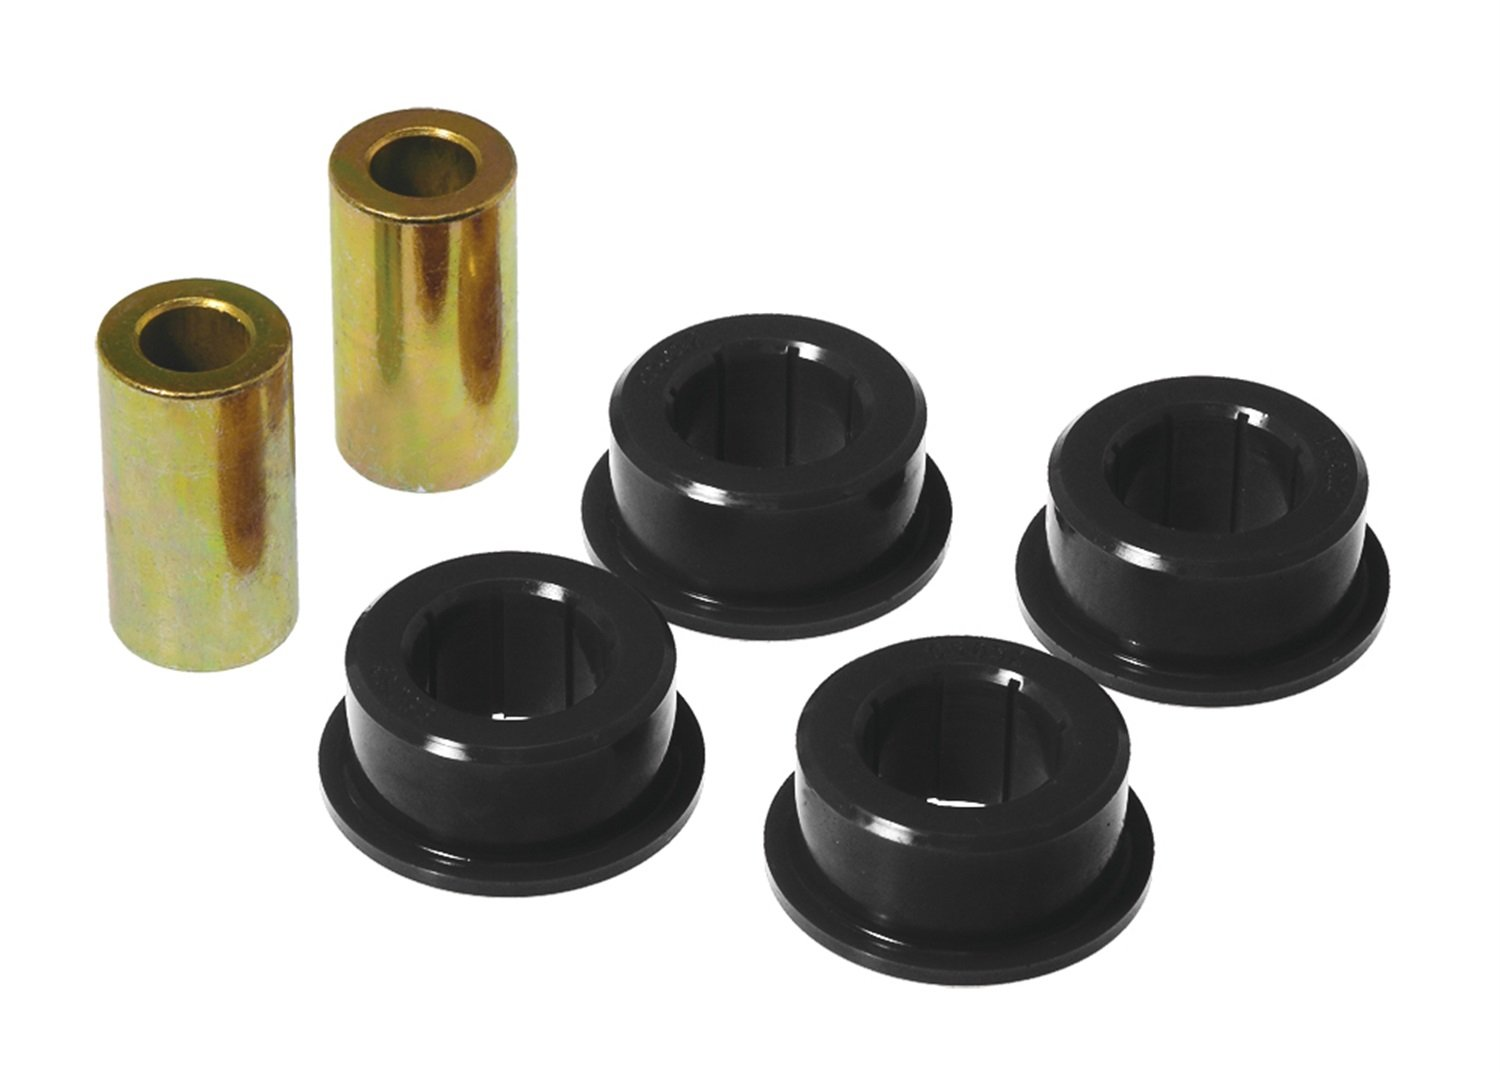 Prothane 6-1219-BL Black Rear Track Bar Bushing Kit